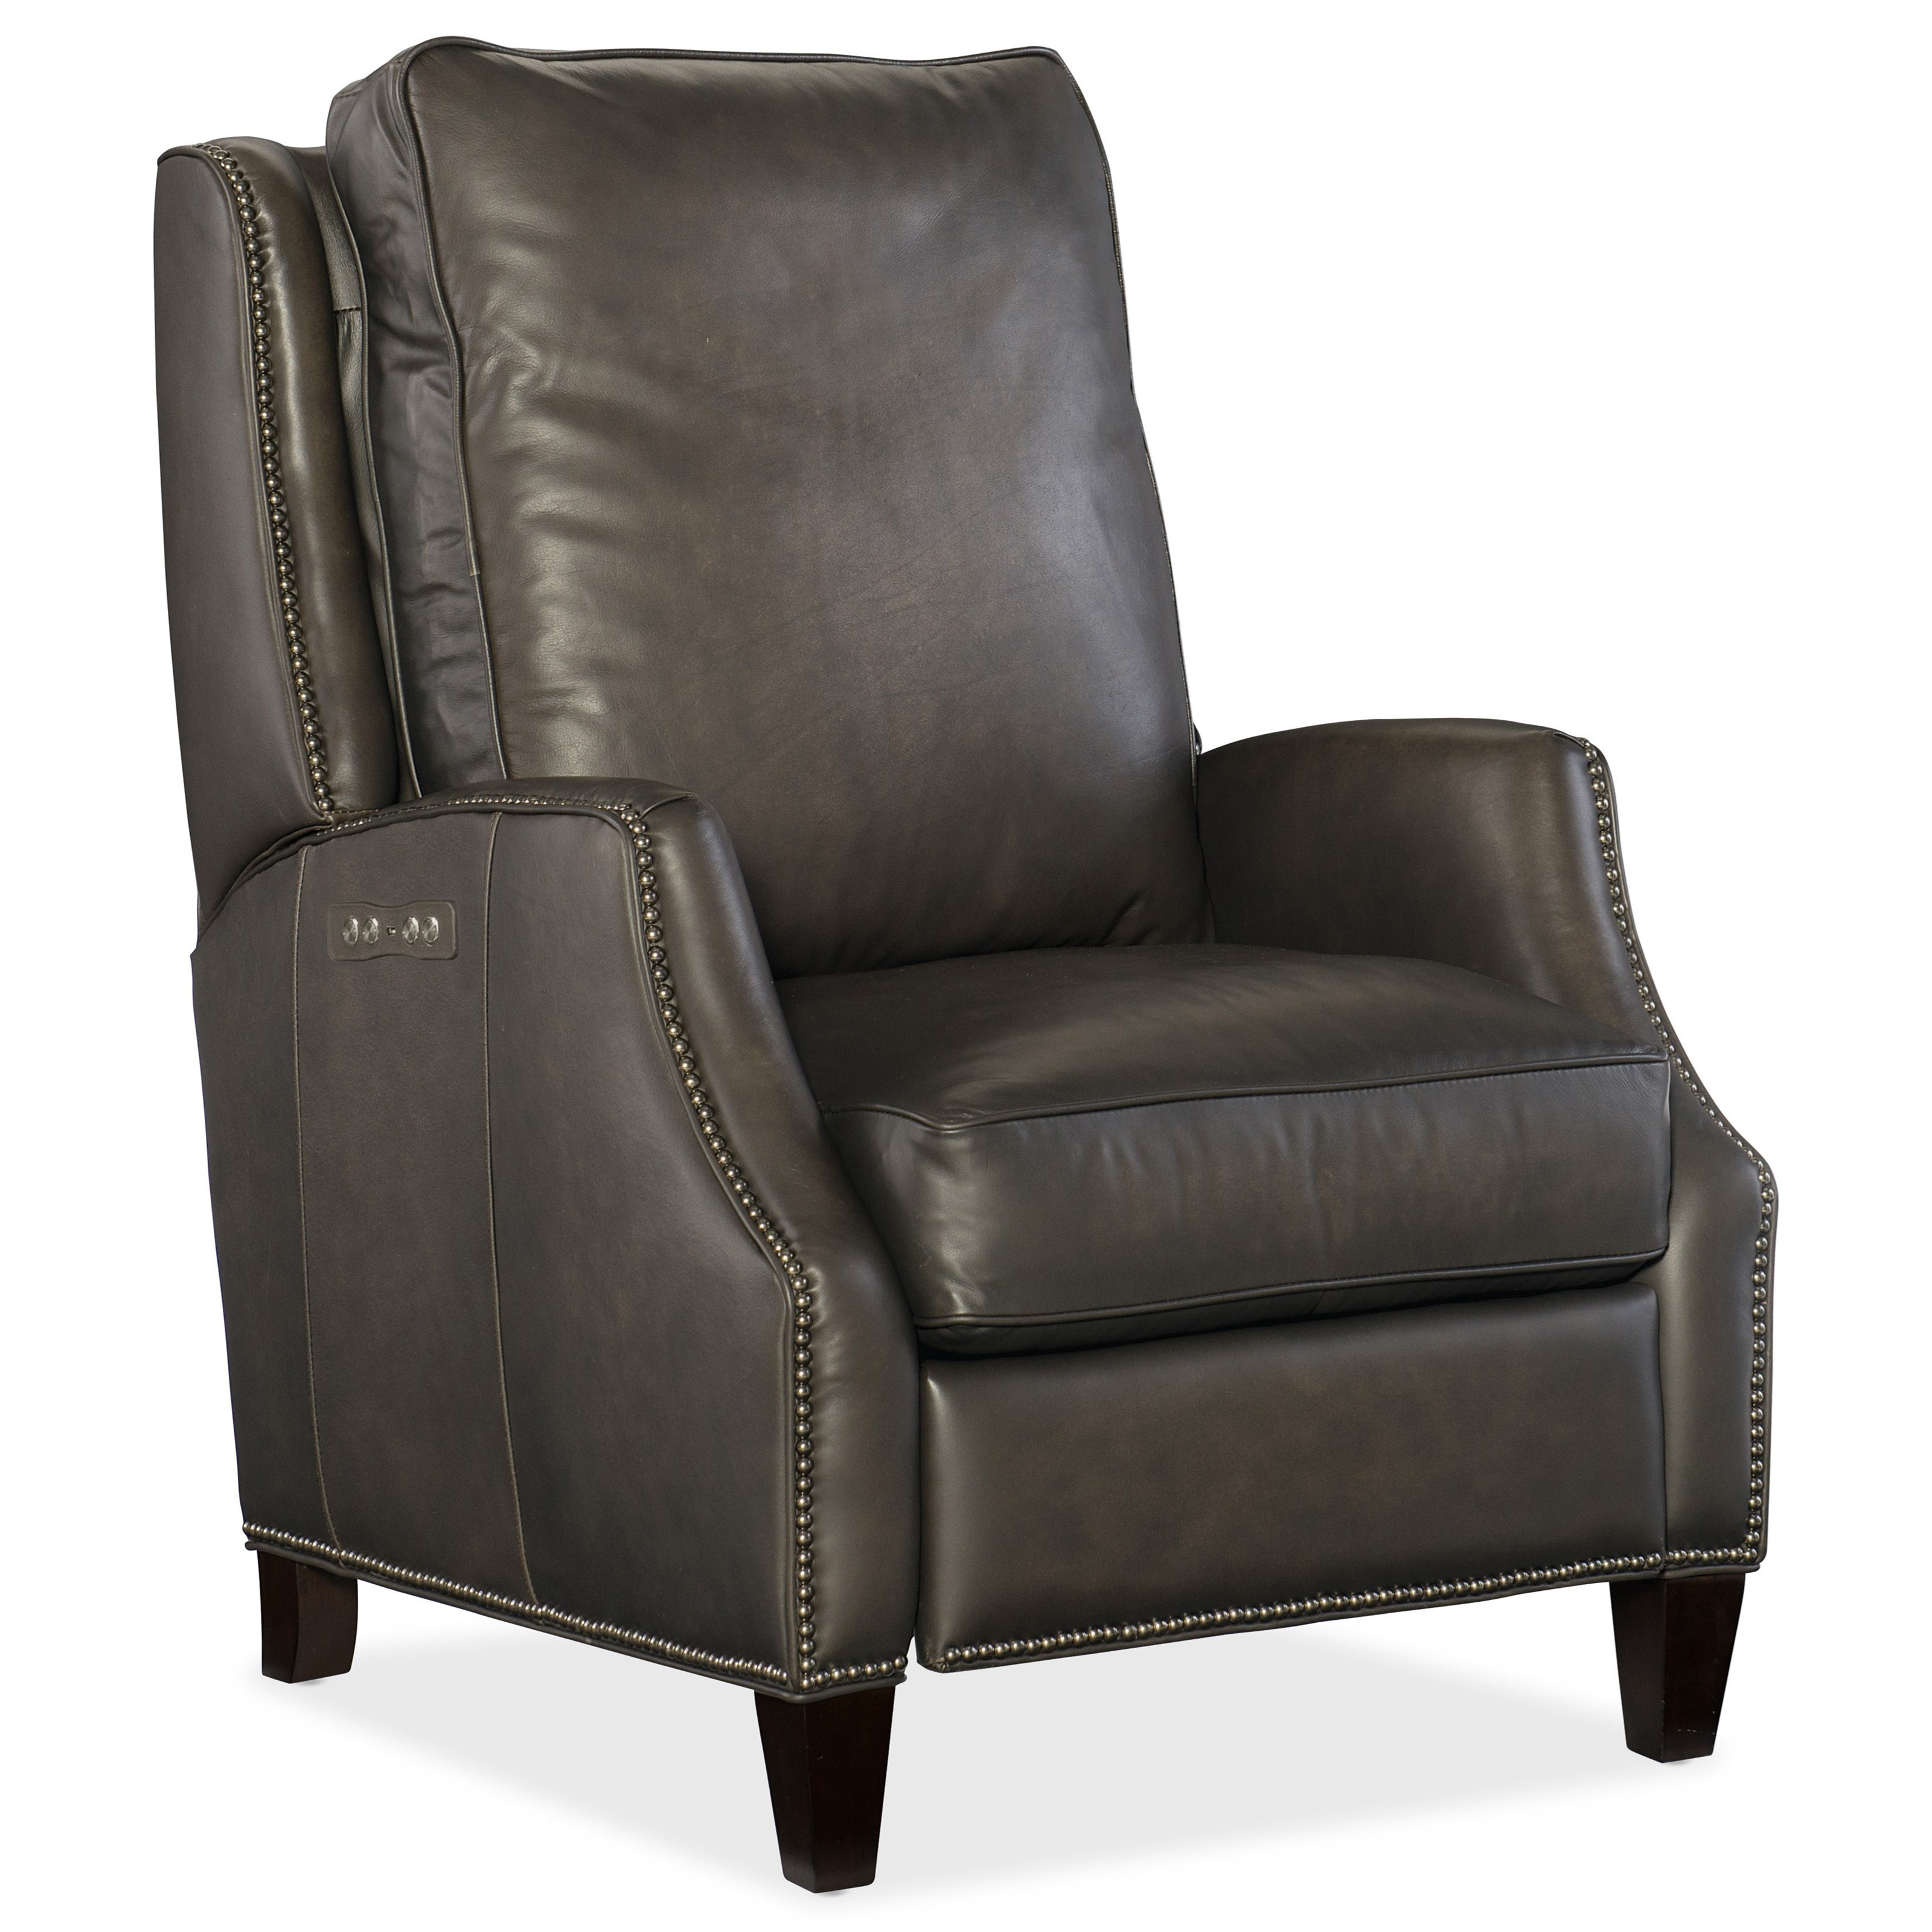 Kerley Power Recliner w/ Power Headrest at Williams & Kay